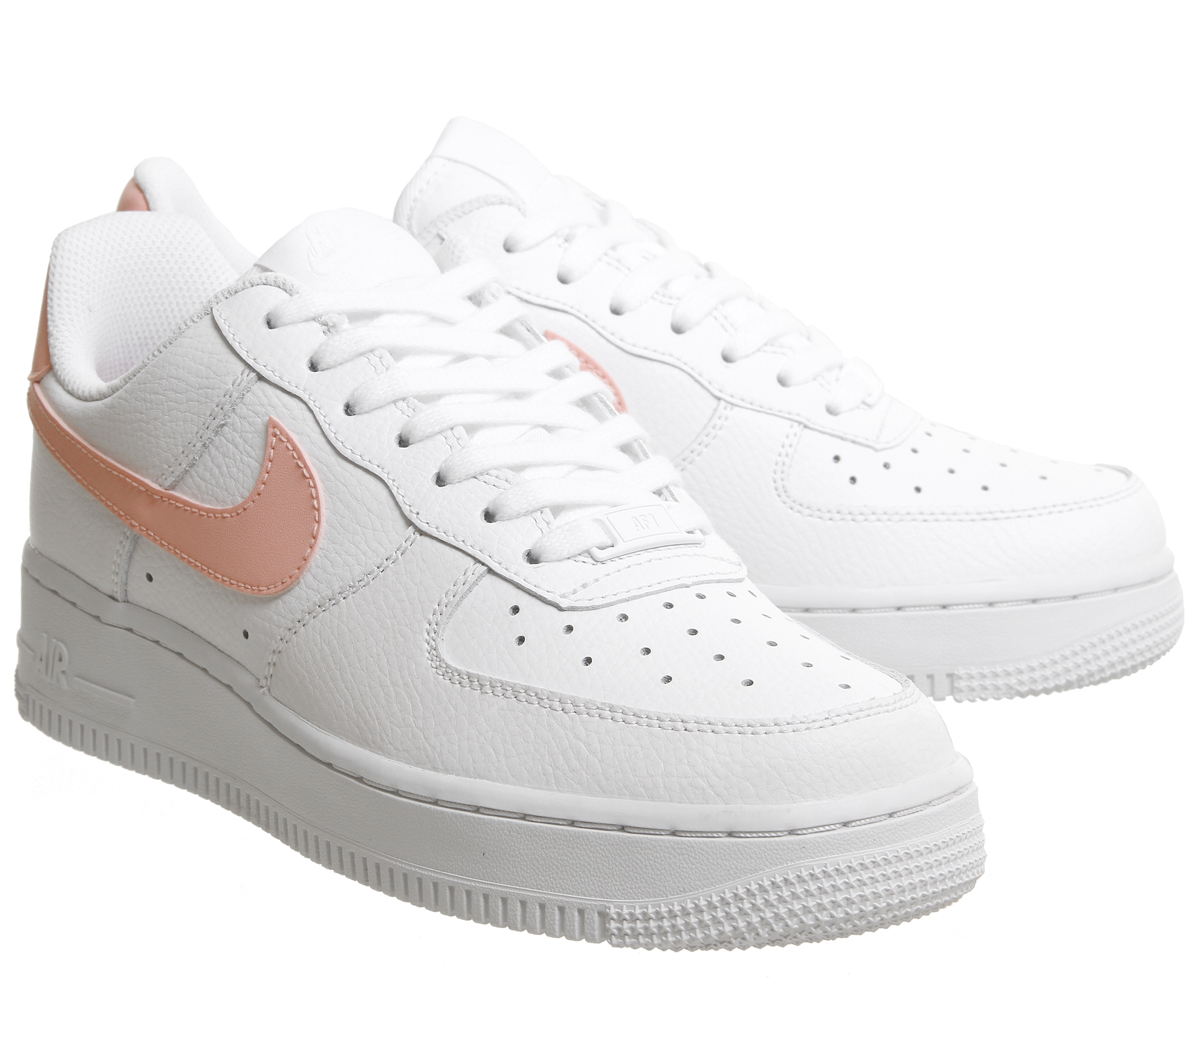 Nike Air Force 1 '07 Patent White Oracle Pink Rematch